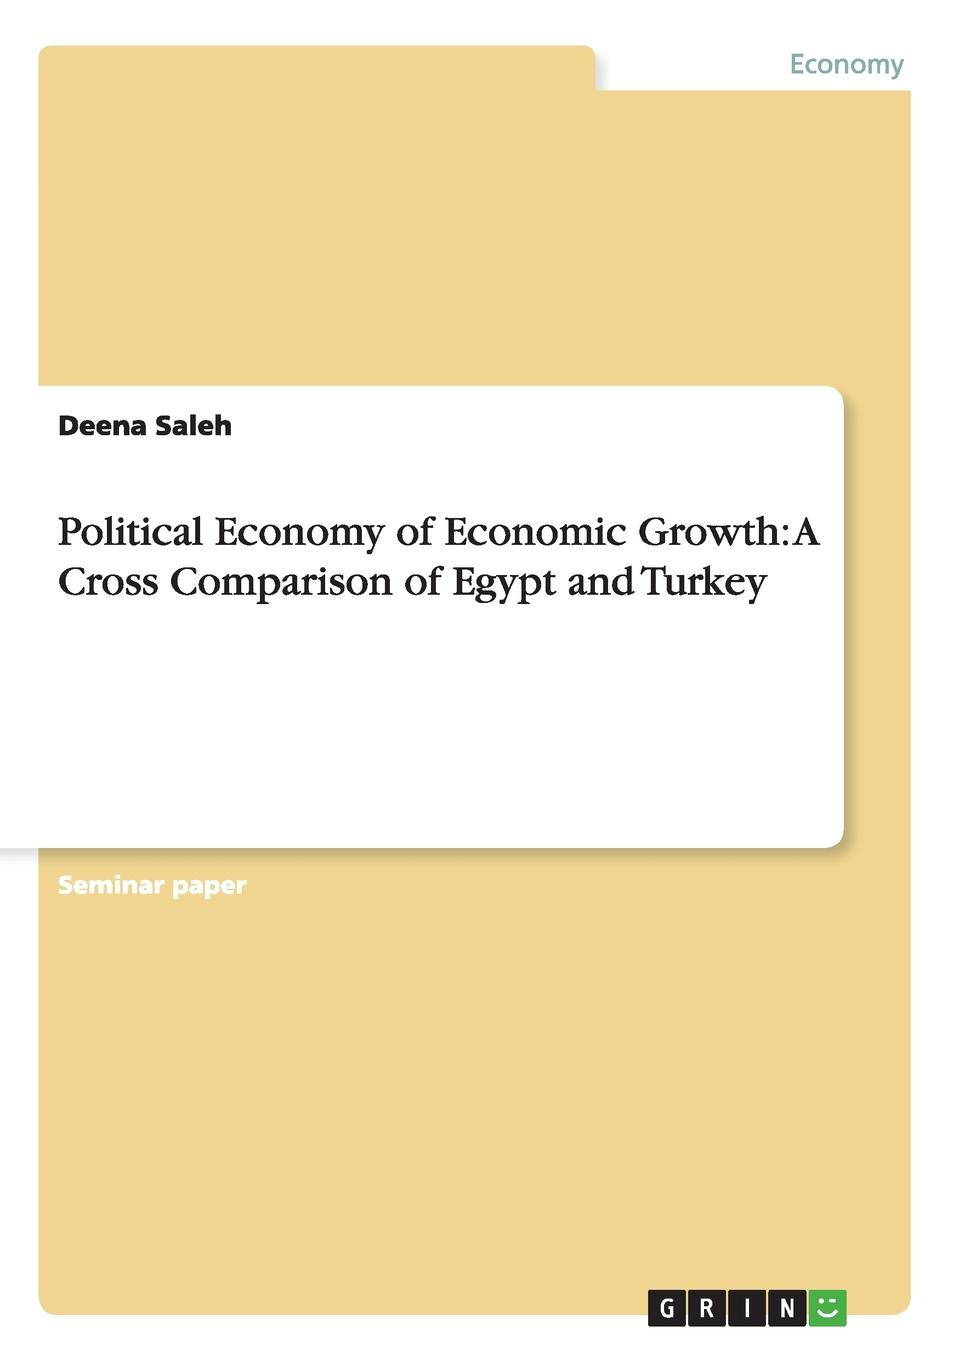 Deena Saleh Political Economy of Economic Growth. A Cross Comparison of Egypt and Turkey jerald pinto e economics for investment decision makers workbook micro macro and international economics